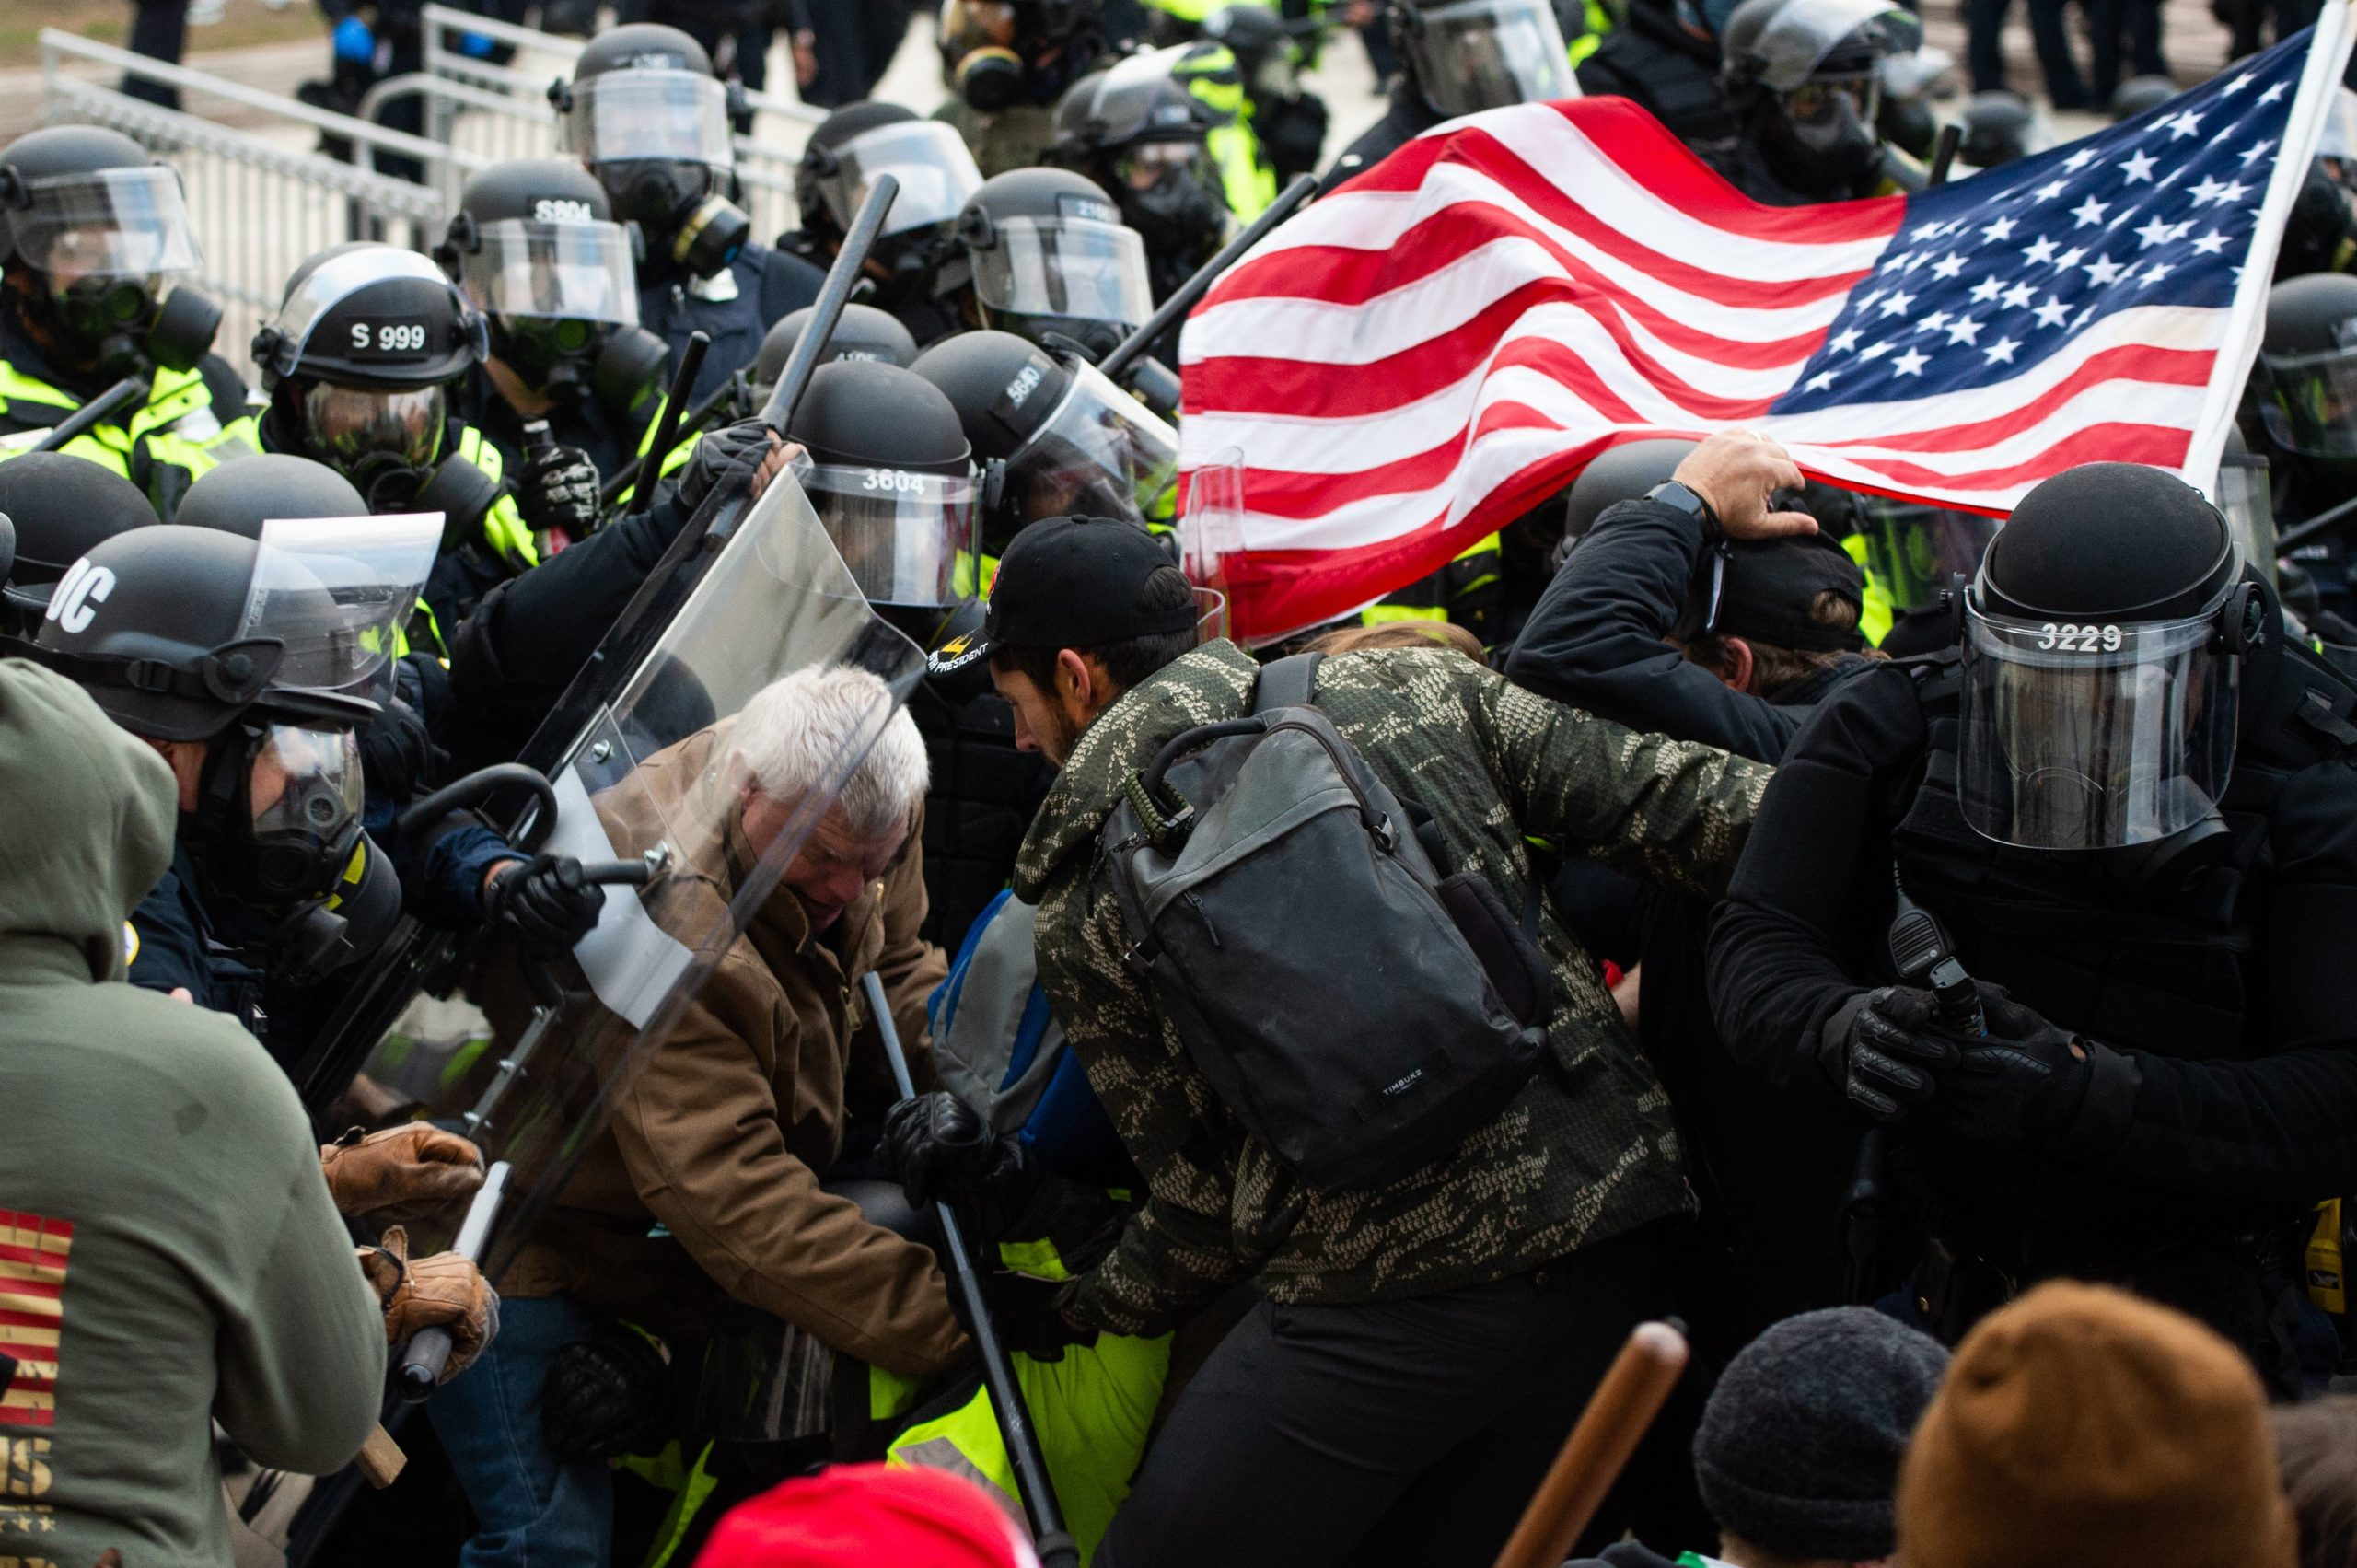 Supporters of US President Donald Trump fight with riot police outside the Capitol building on January 6, 2021 in Washington, DC. (ROBERTO SCHMIDT/AFP via Getty Images)